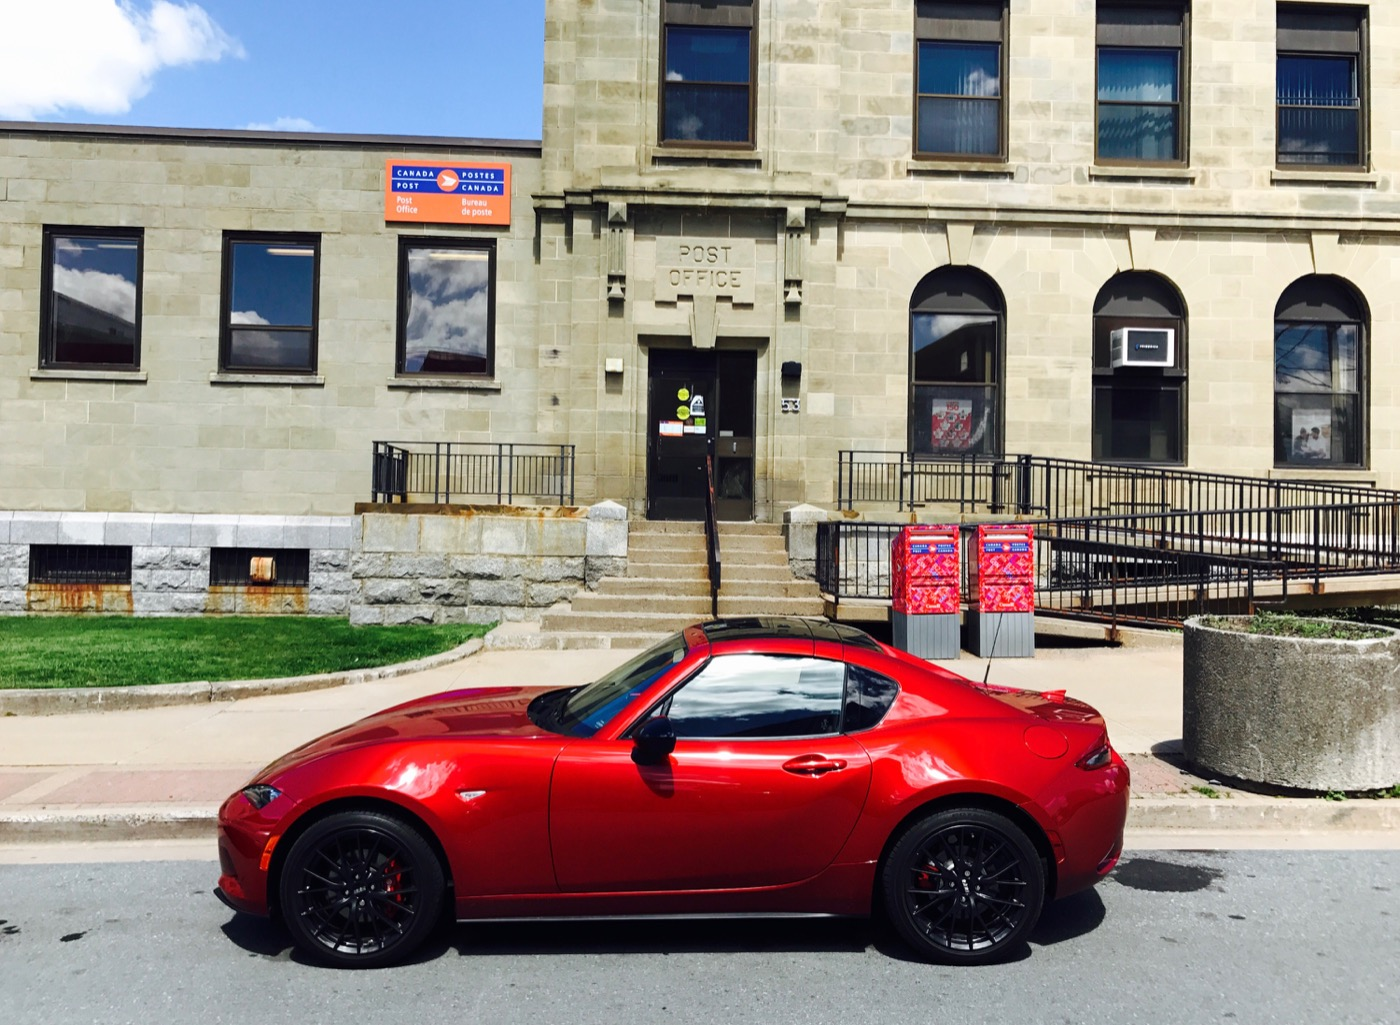 2017 Mazda MX 5 RF Soul Red   Image: © Timothy Cain Roof Stowed ...